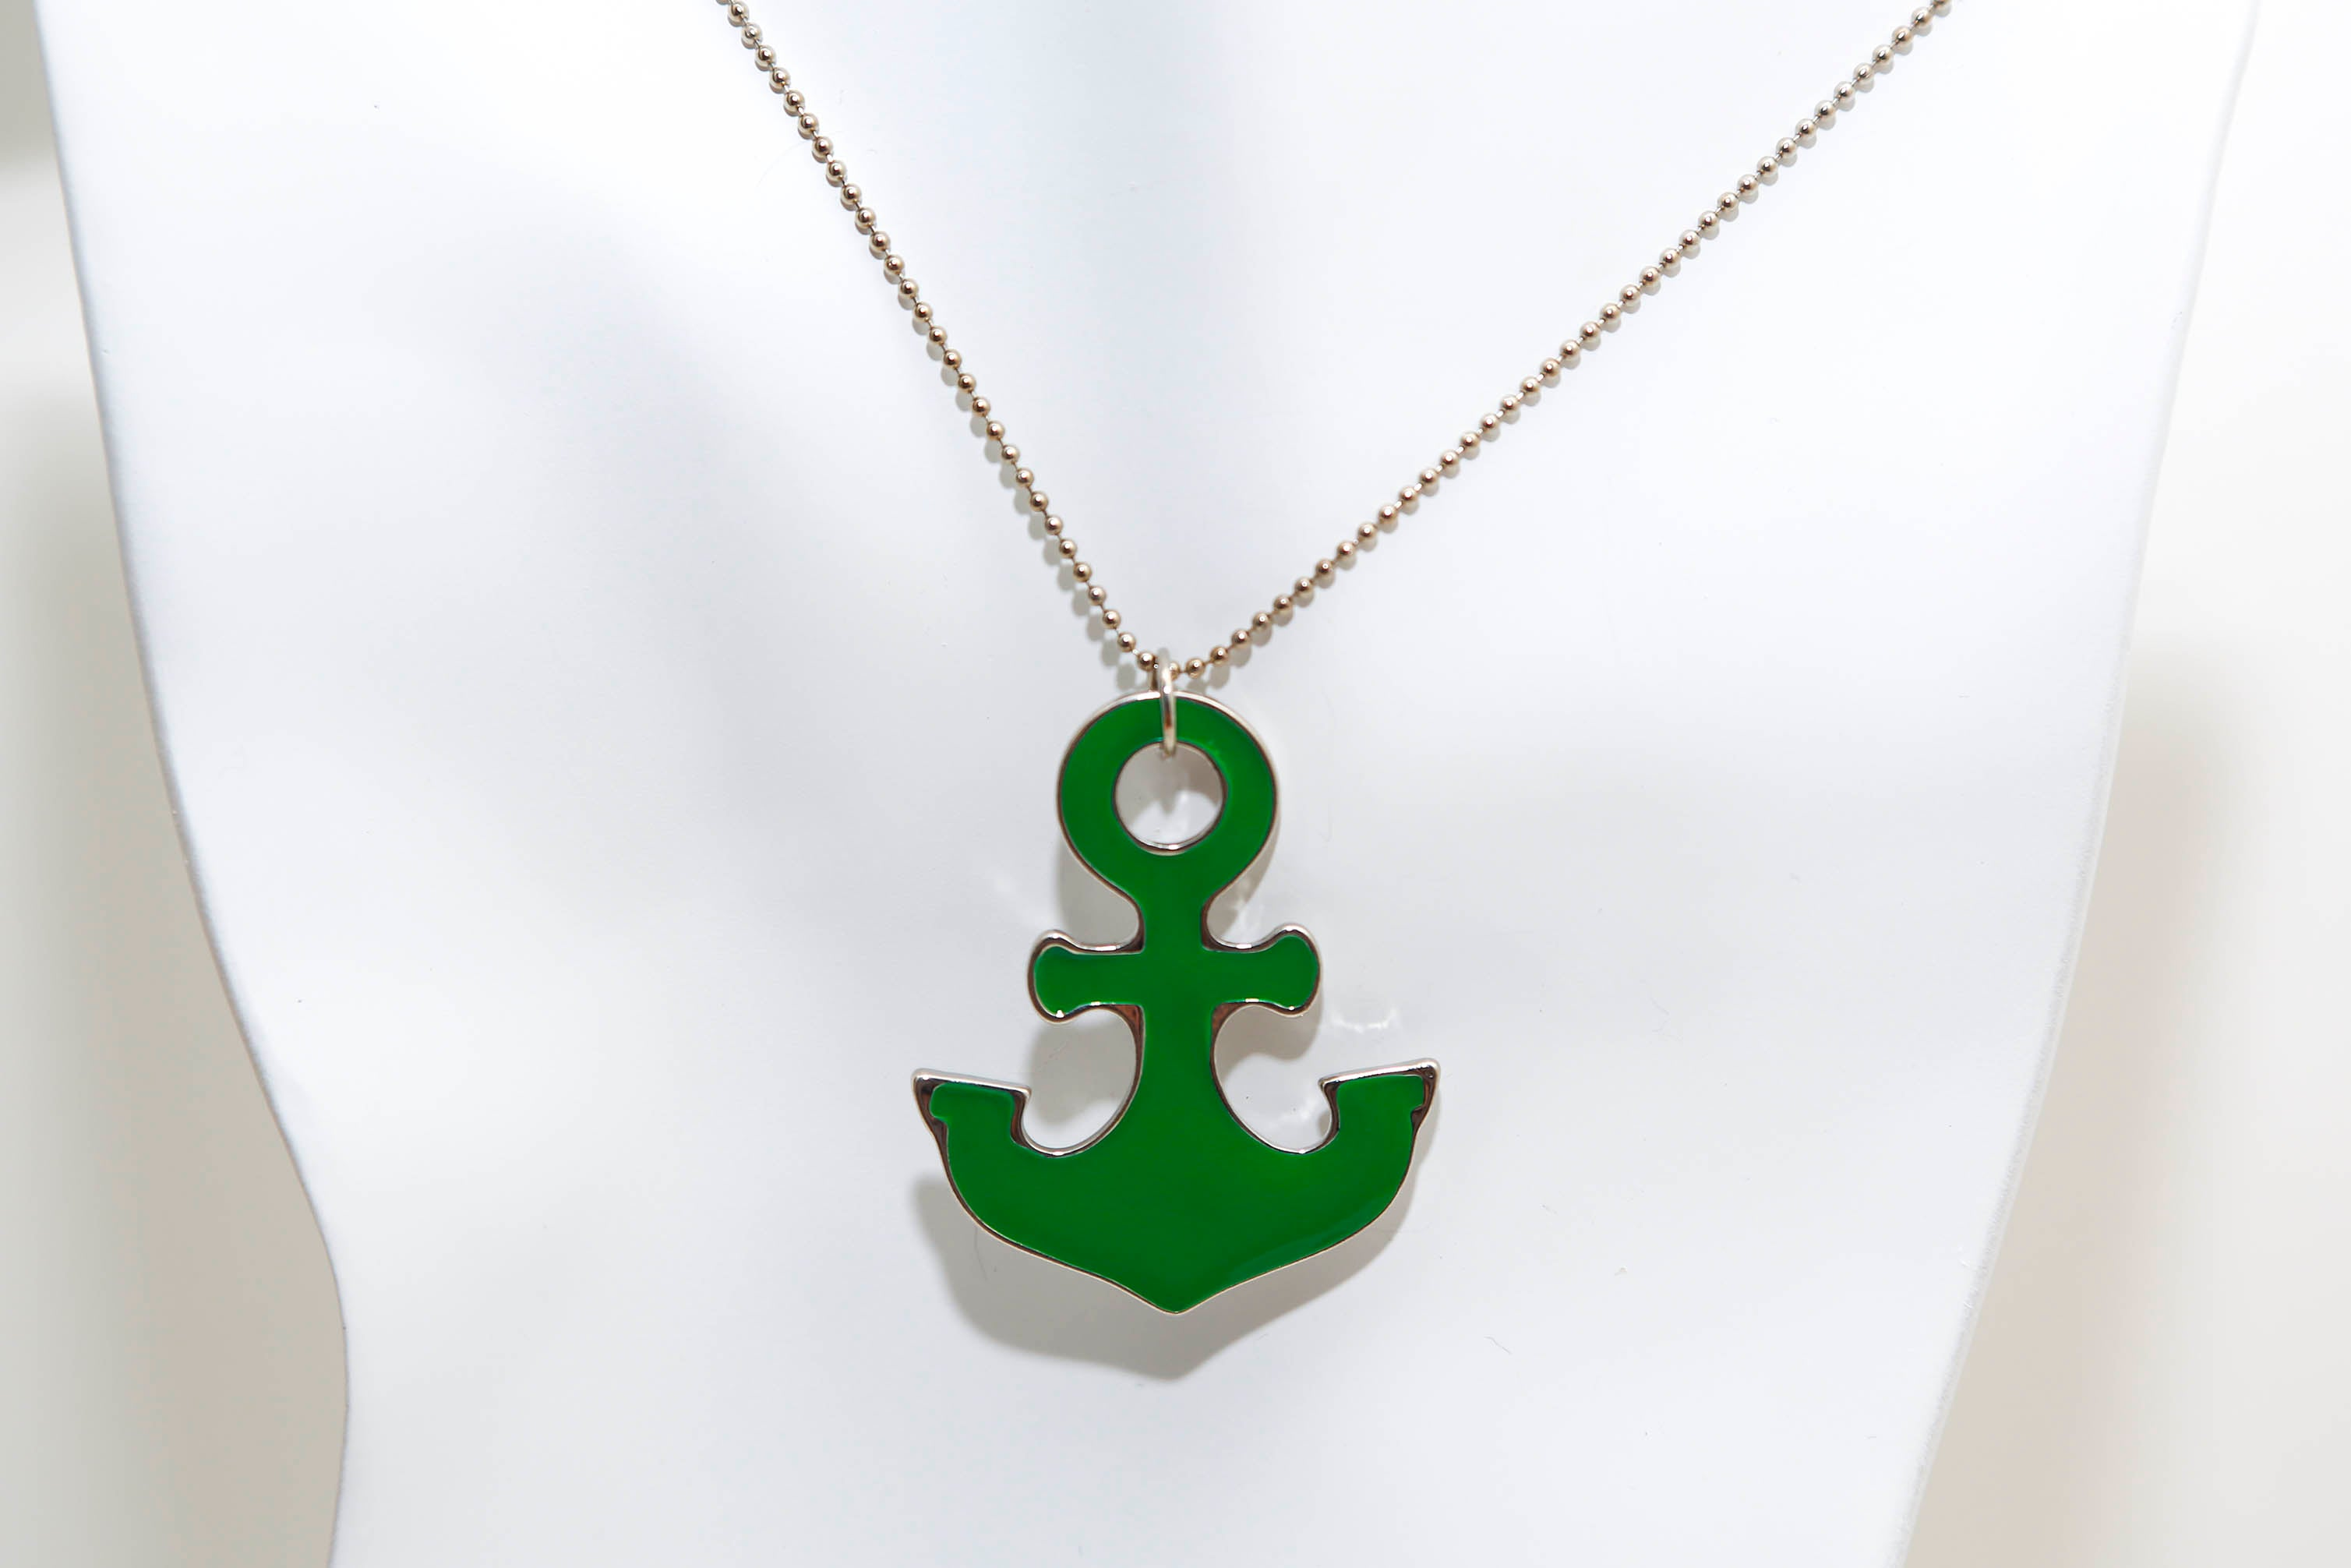 brass whitevalentine pendant necklace en necklaces with unisex anchor product